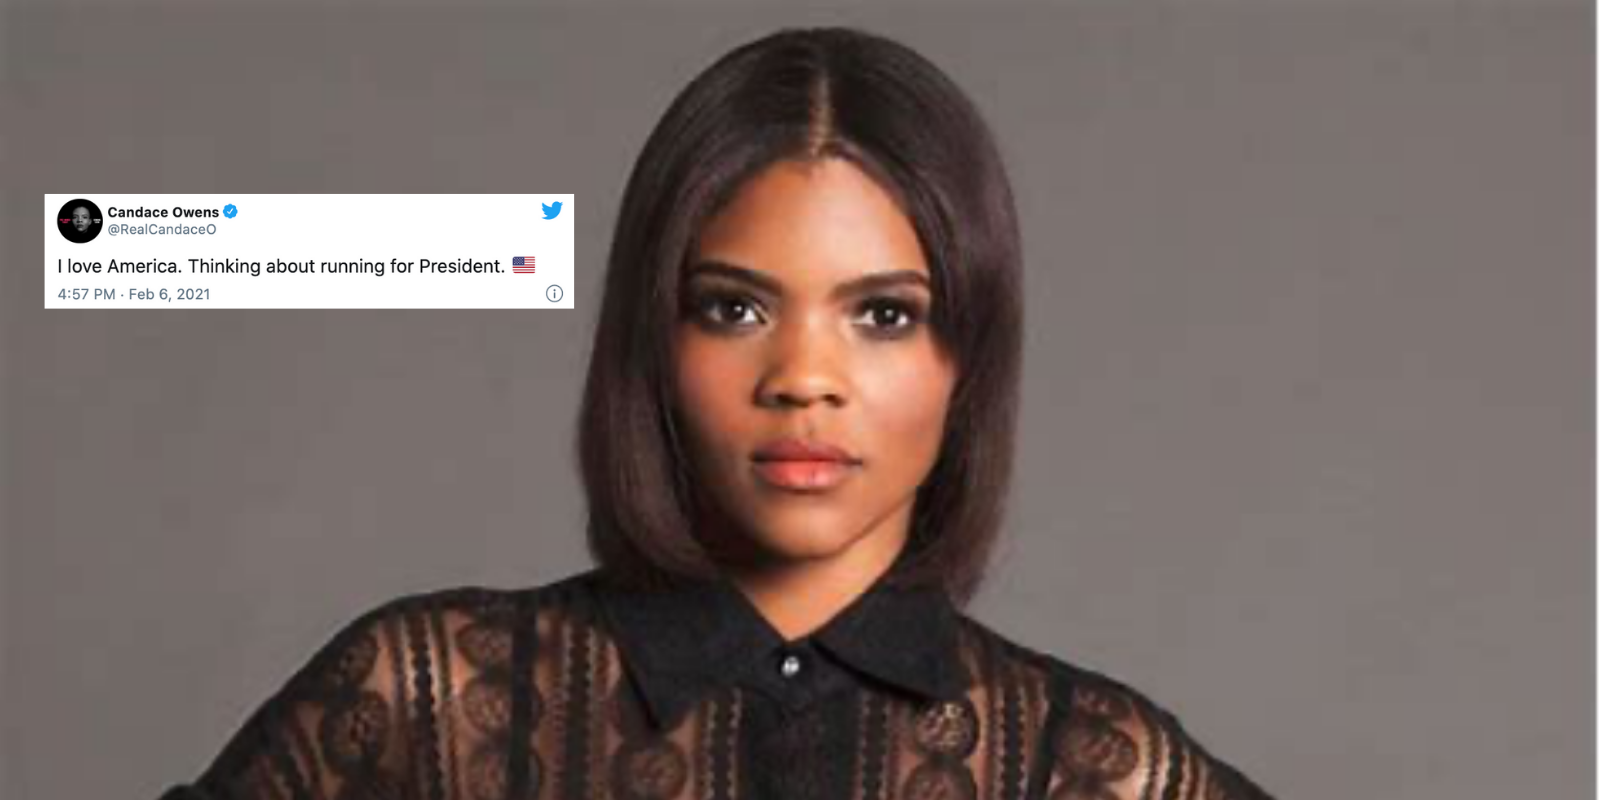 Candace Owens is 'thinking about running for president'